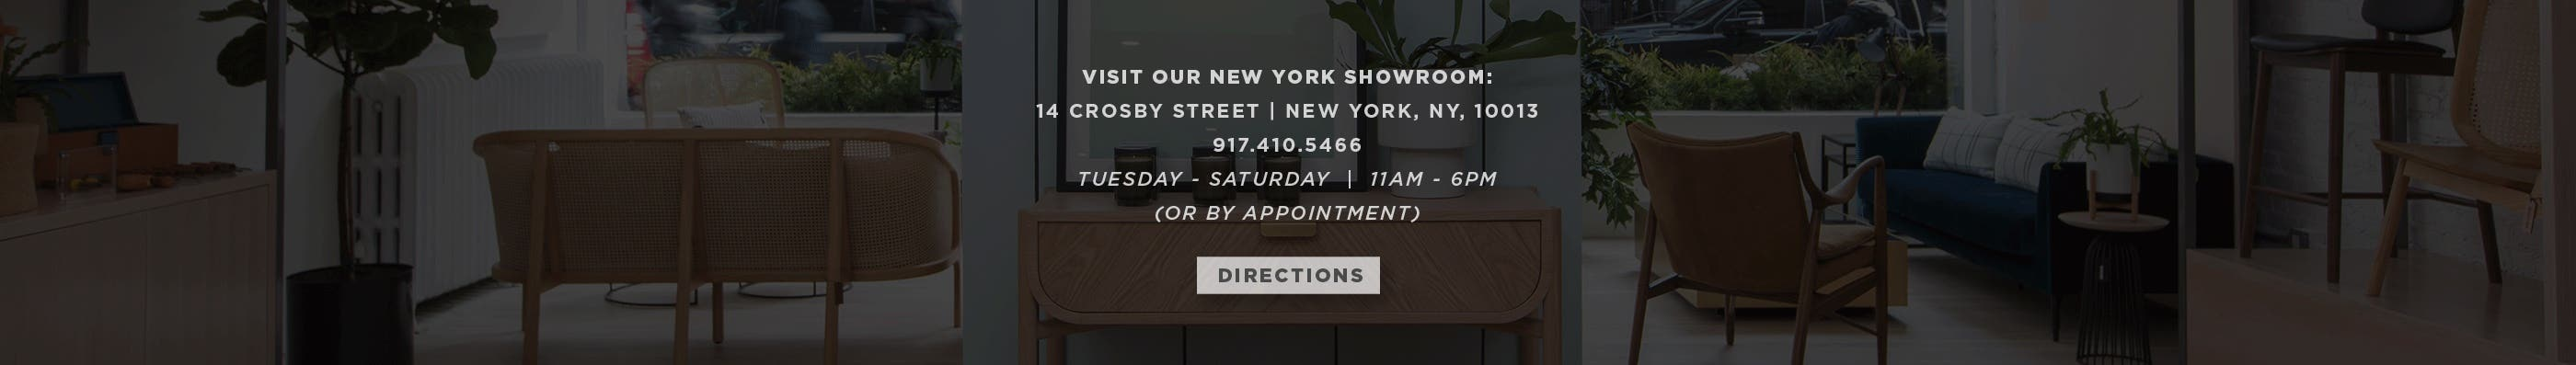 Visit our New York Showroom on 14 Crosby St., New York, NY, 10013